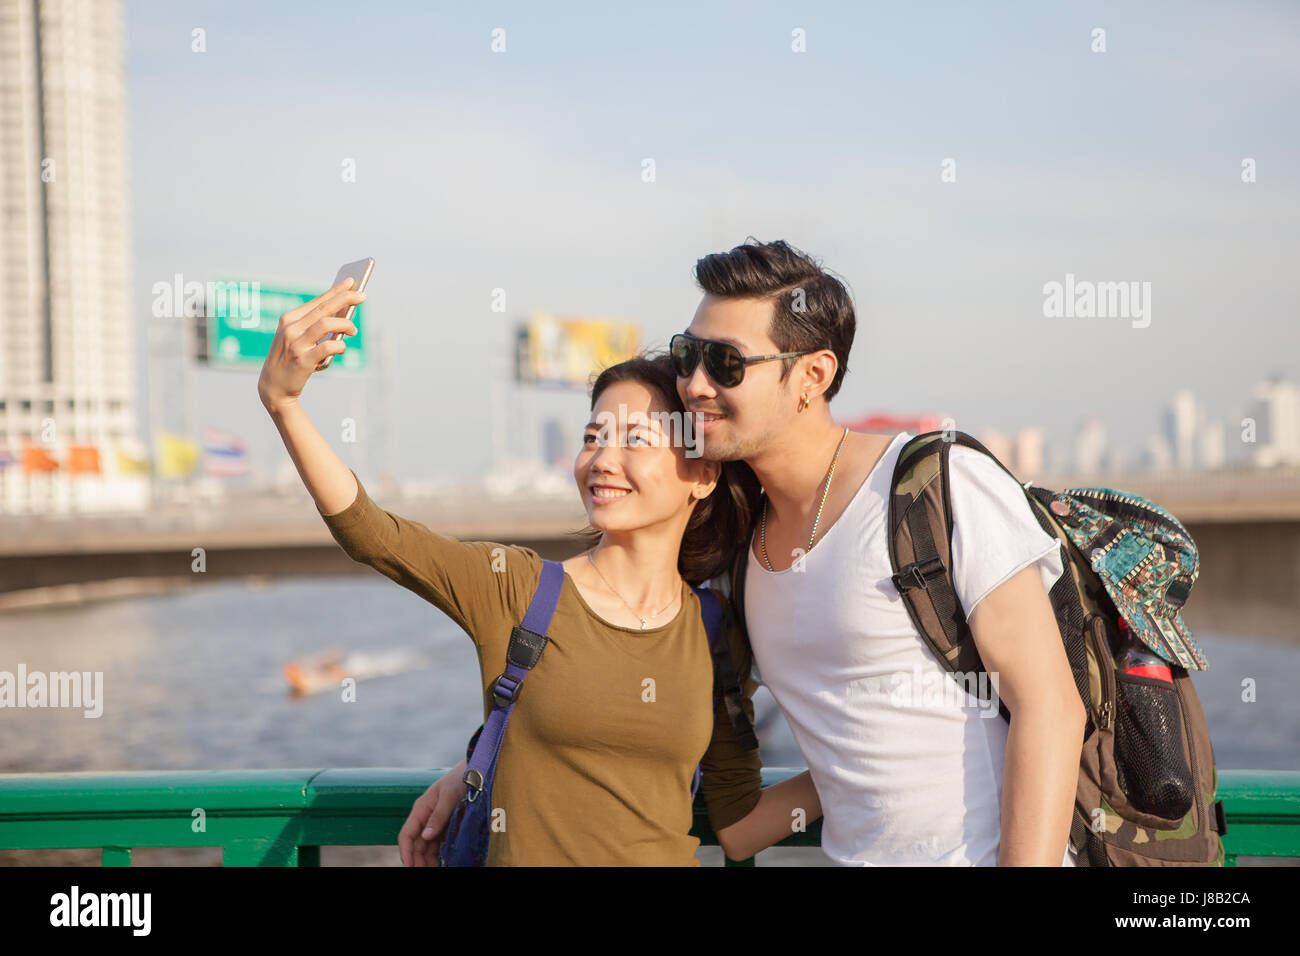 couples of younger man and woman take a selfie photograph by smart phone on traveling location - Stock Image